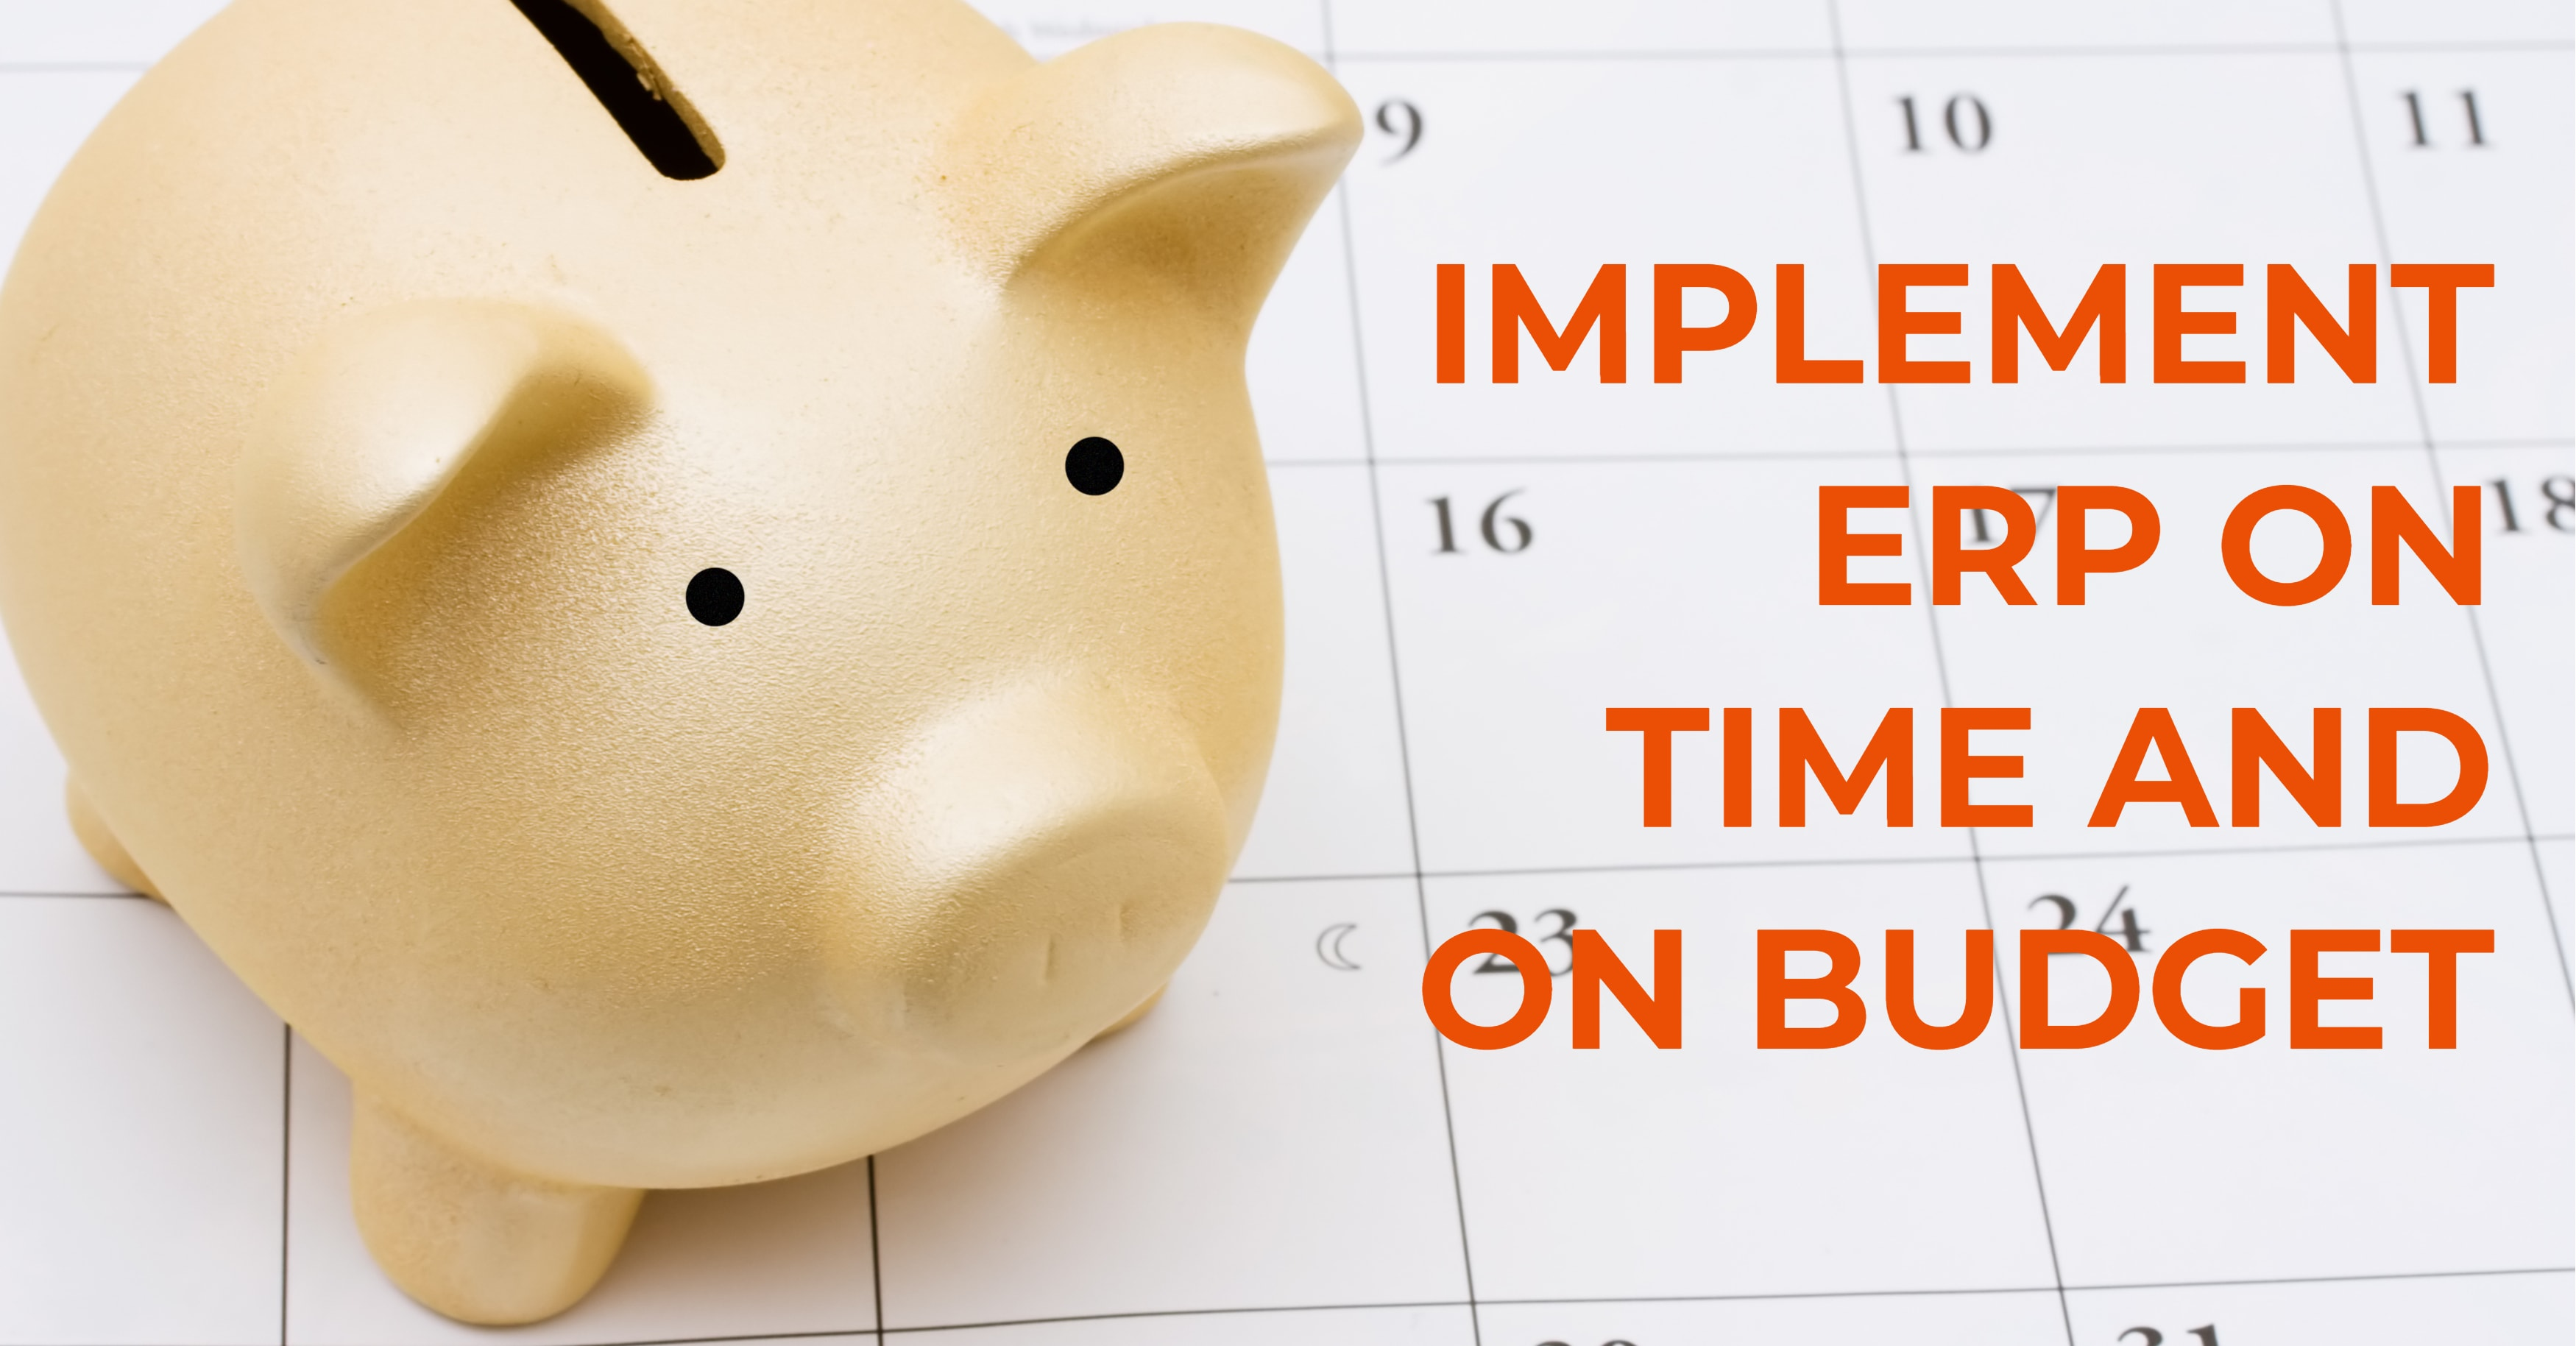 You Can Implement ERP On Time and On Budget